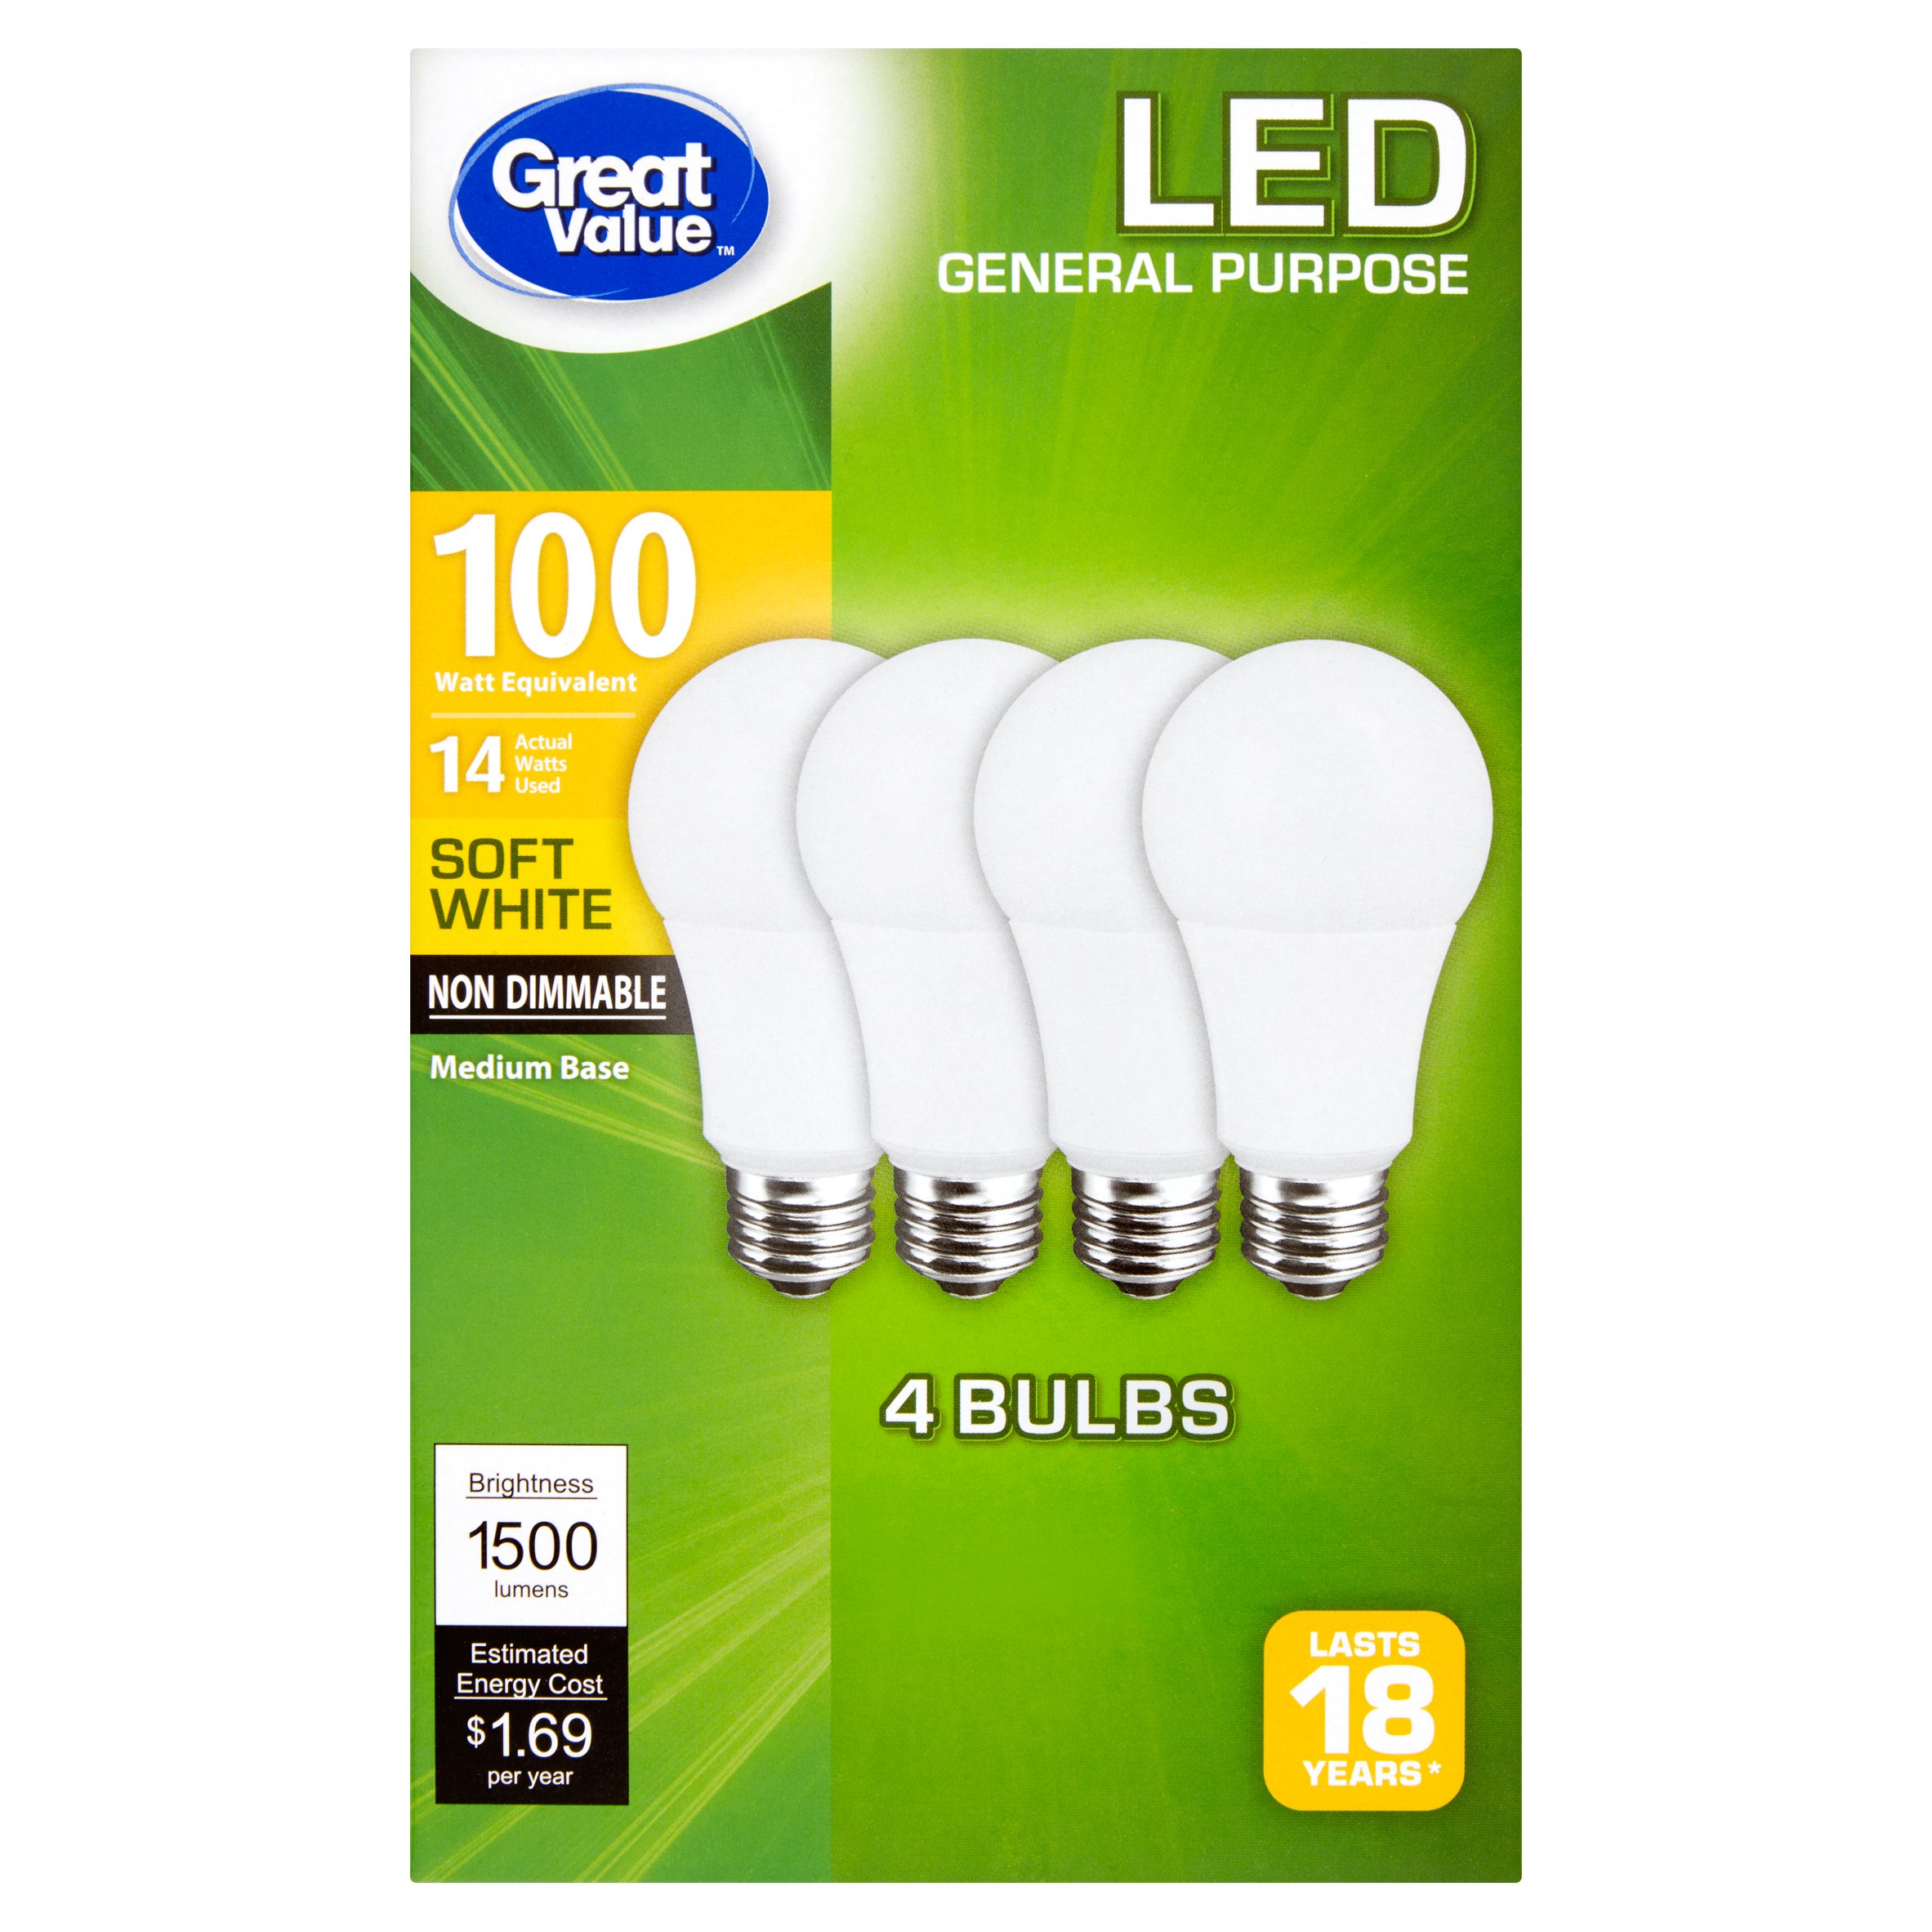 Great Value LED Soft White Medium Base General Purpose Bulbs, 4 count